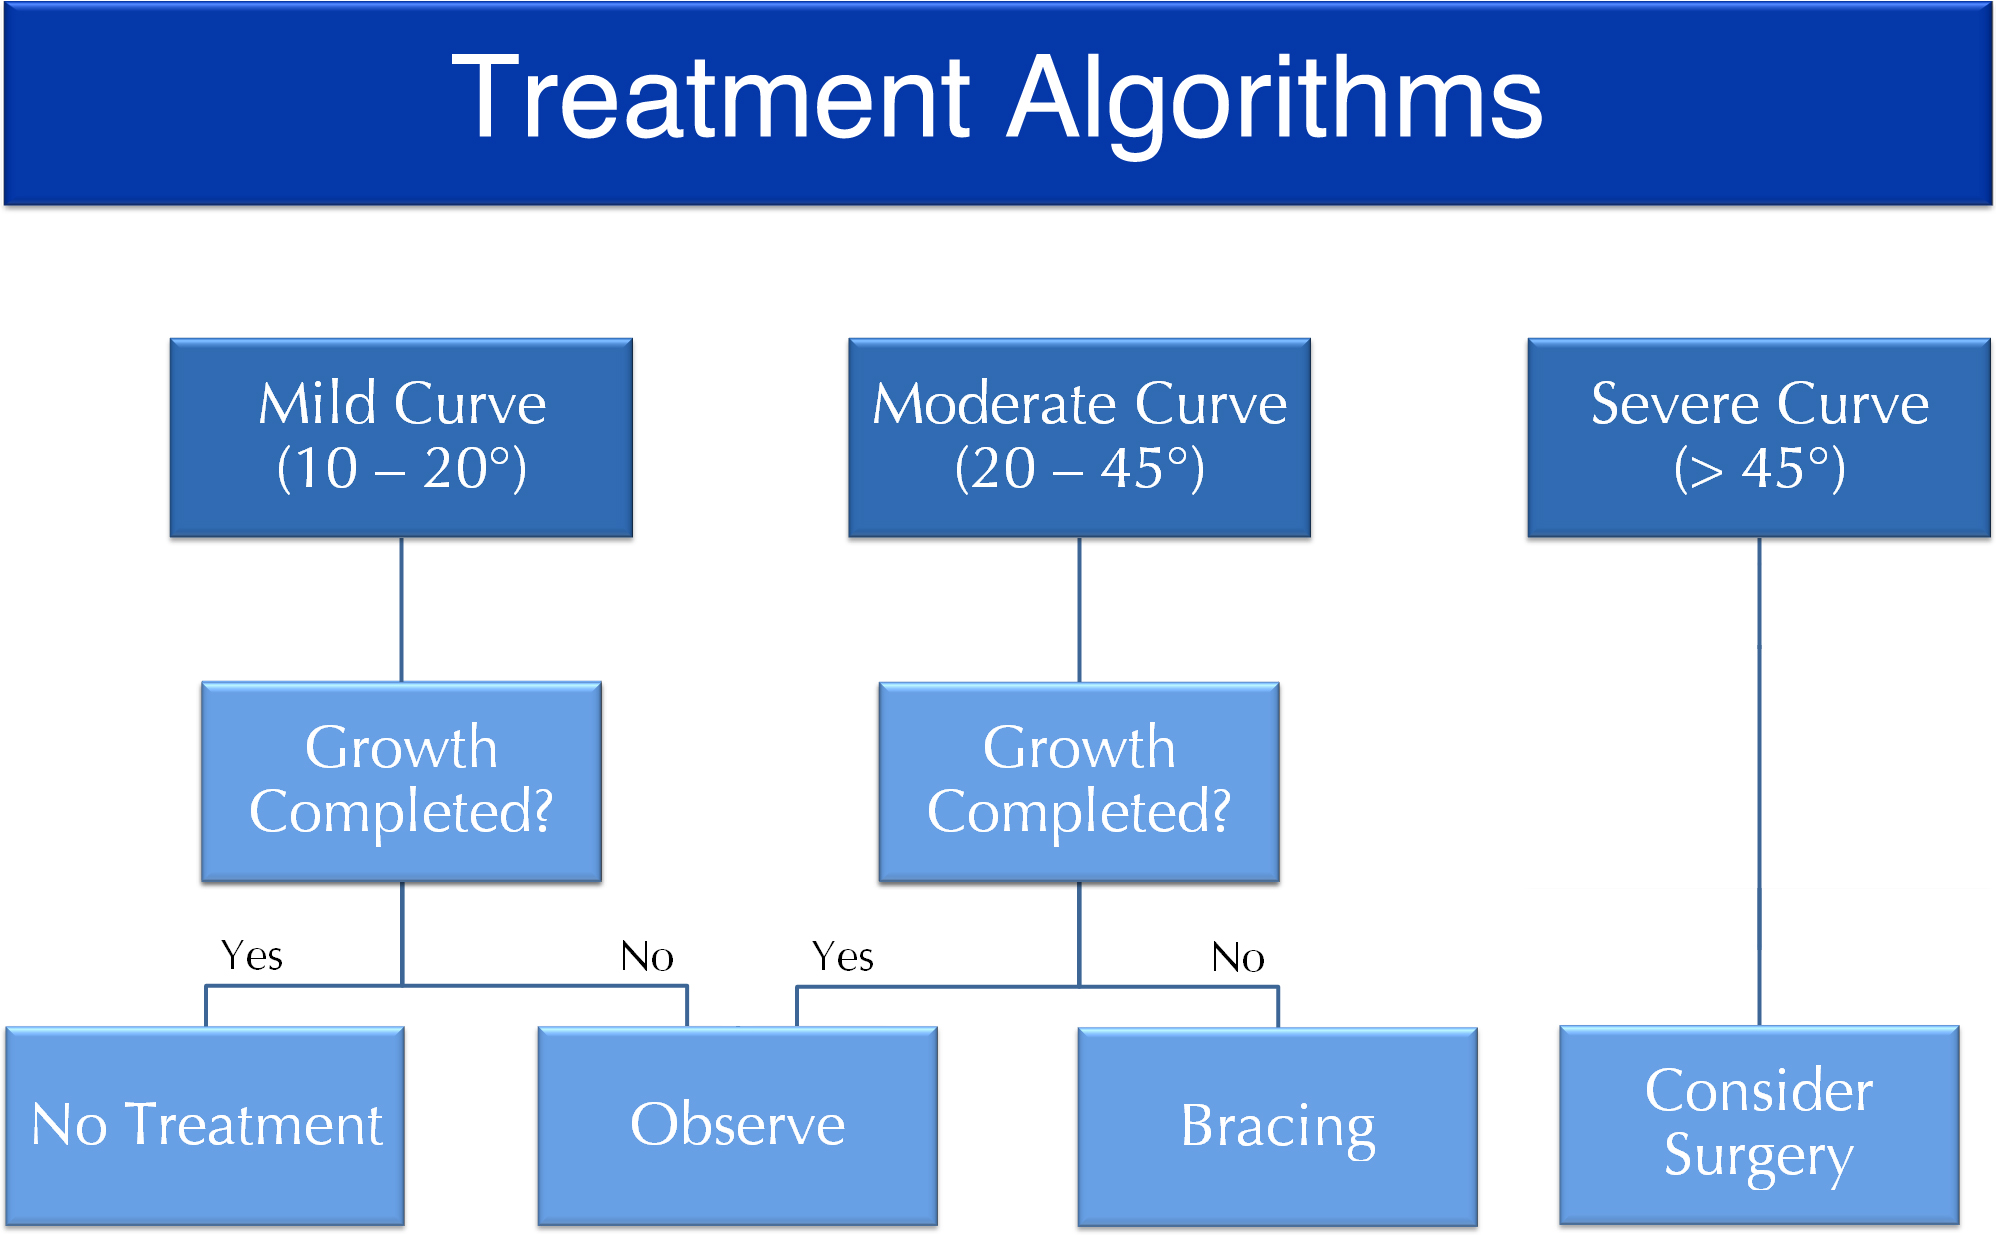 Treatment Algorithms.jpg